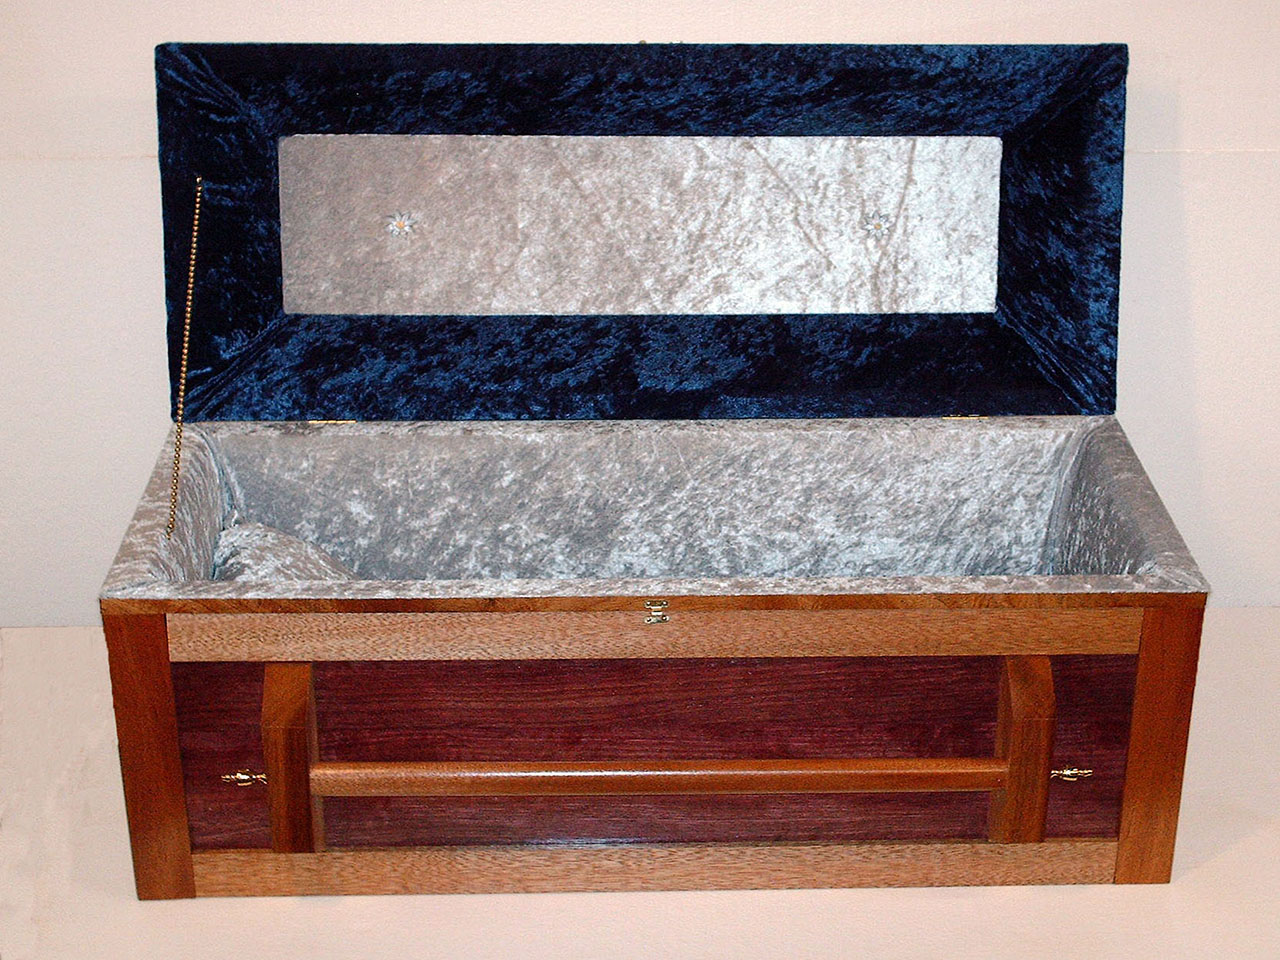 Small/Medium sized pet casket made from Mahogany wood, styled in a